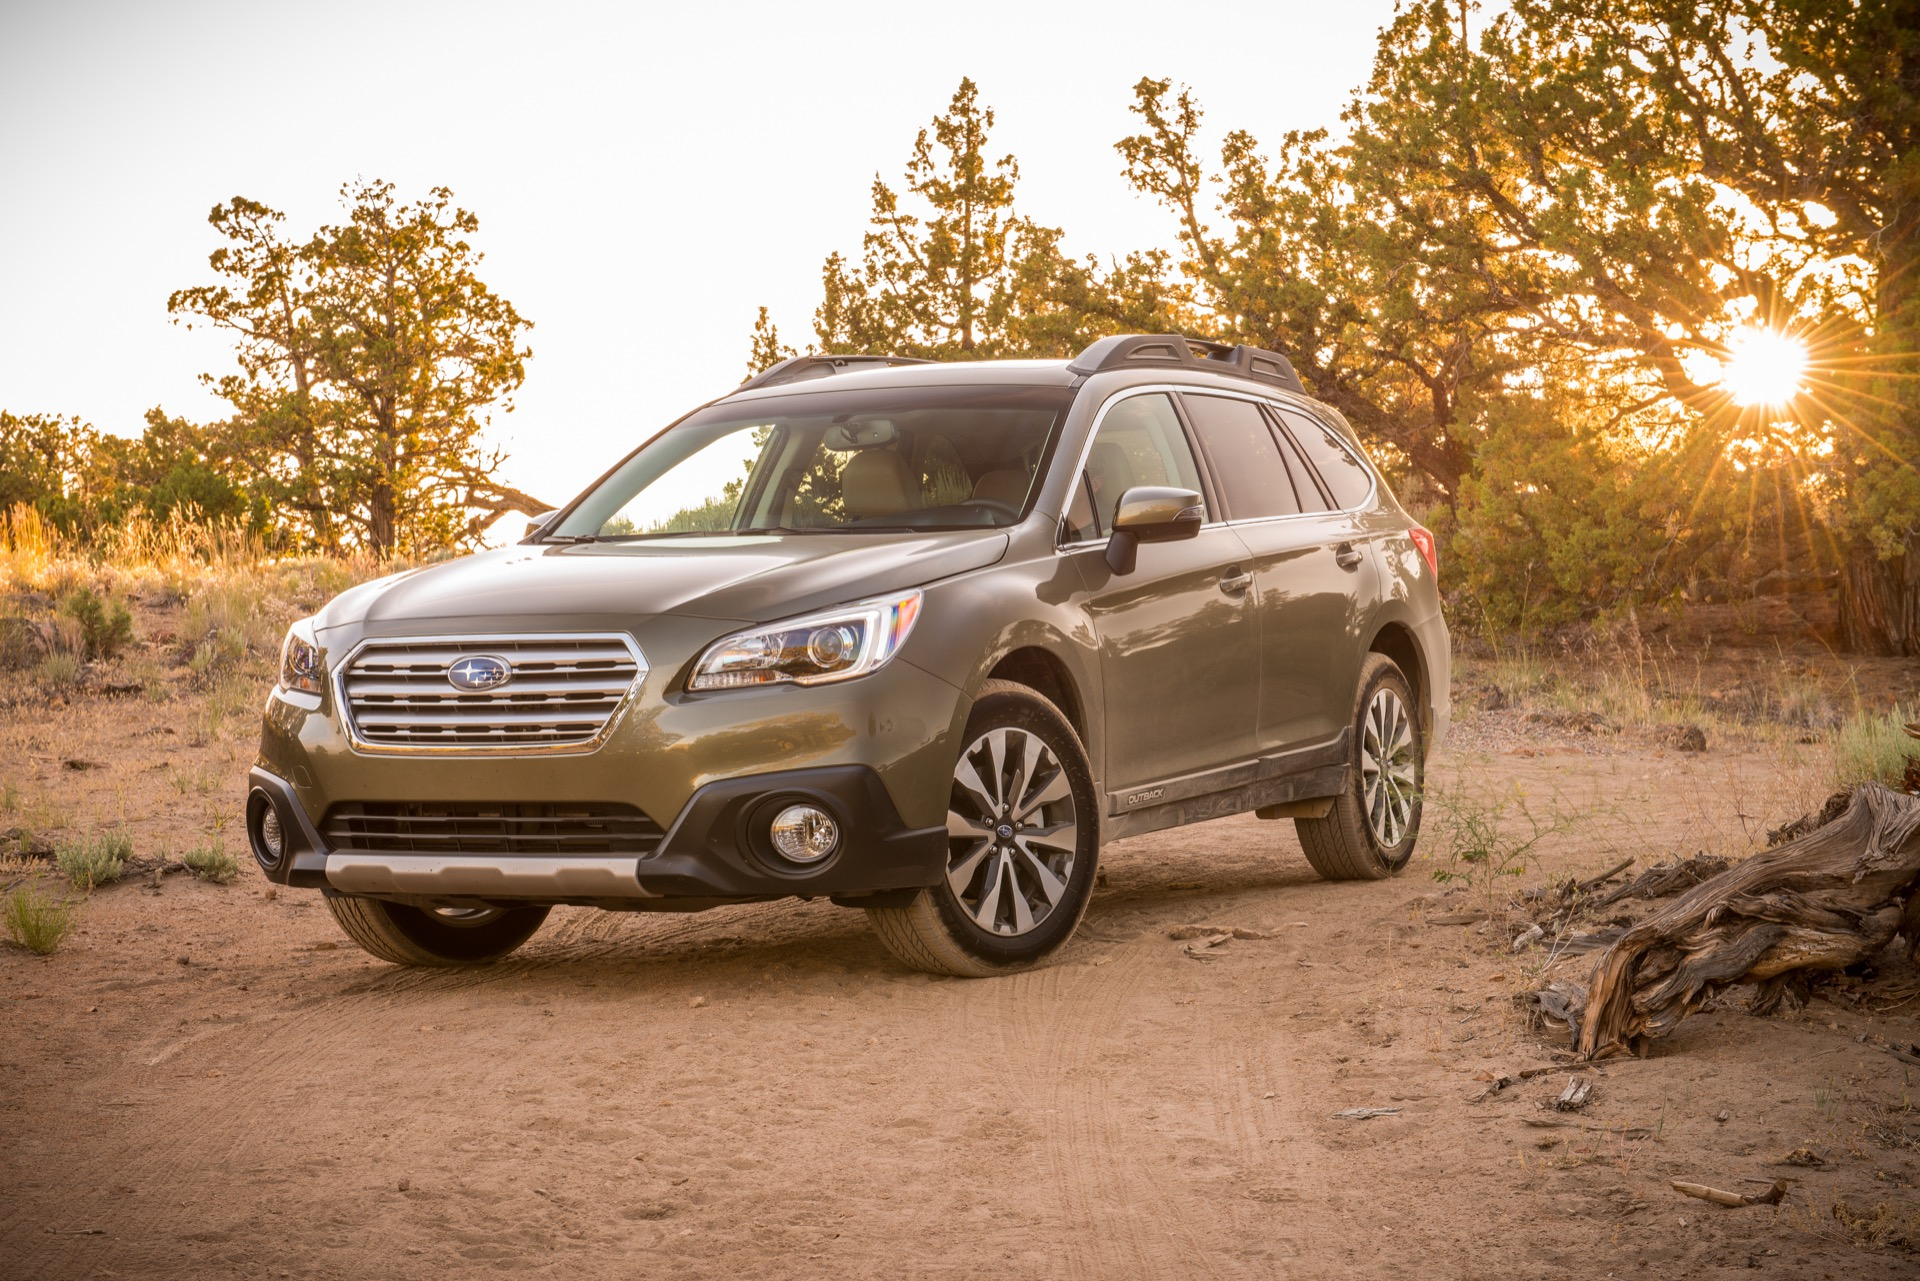 Stop sale & recall issued for 2016 2017 Subaru Legacy due to